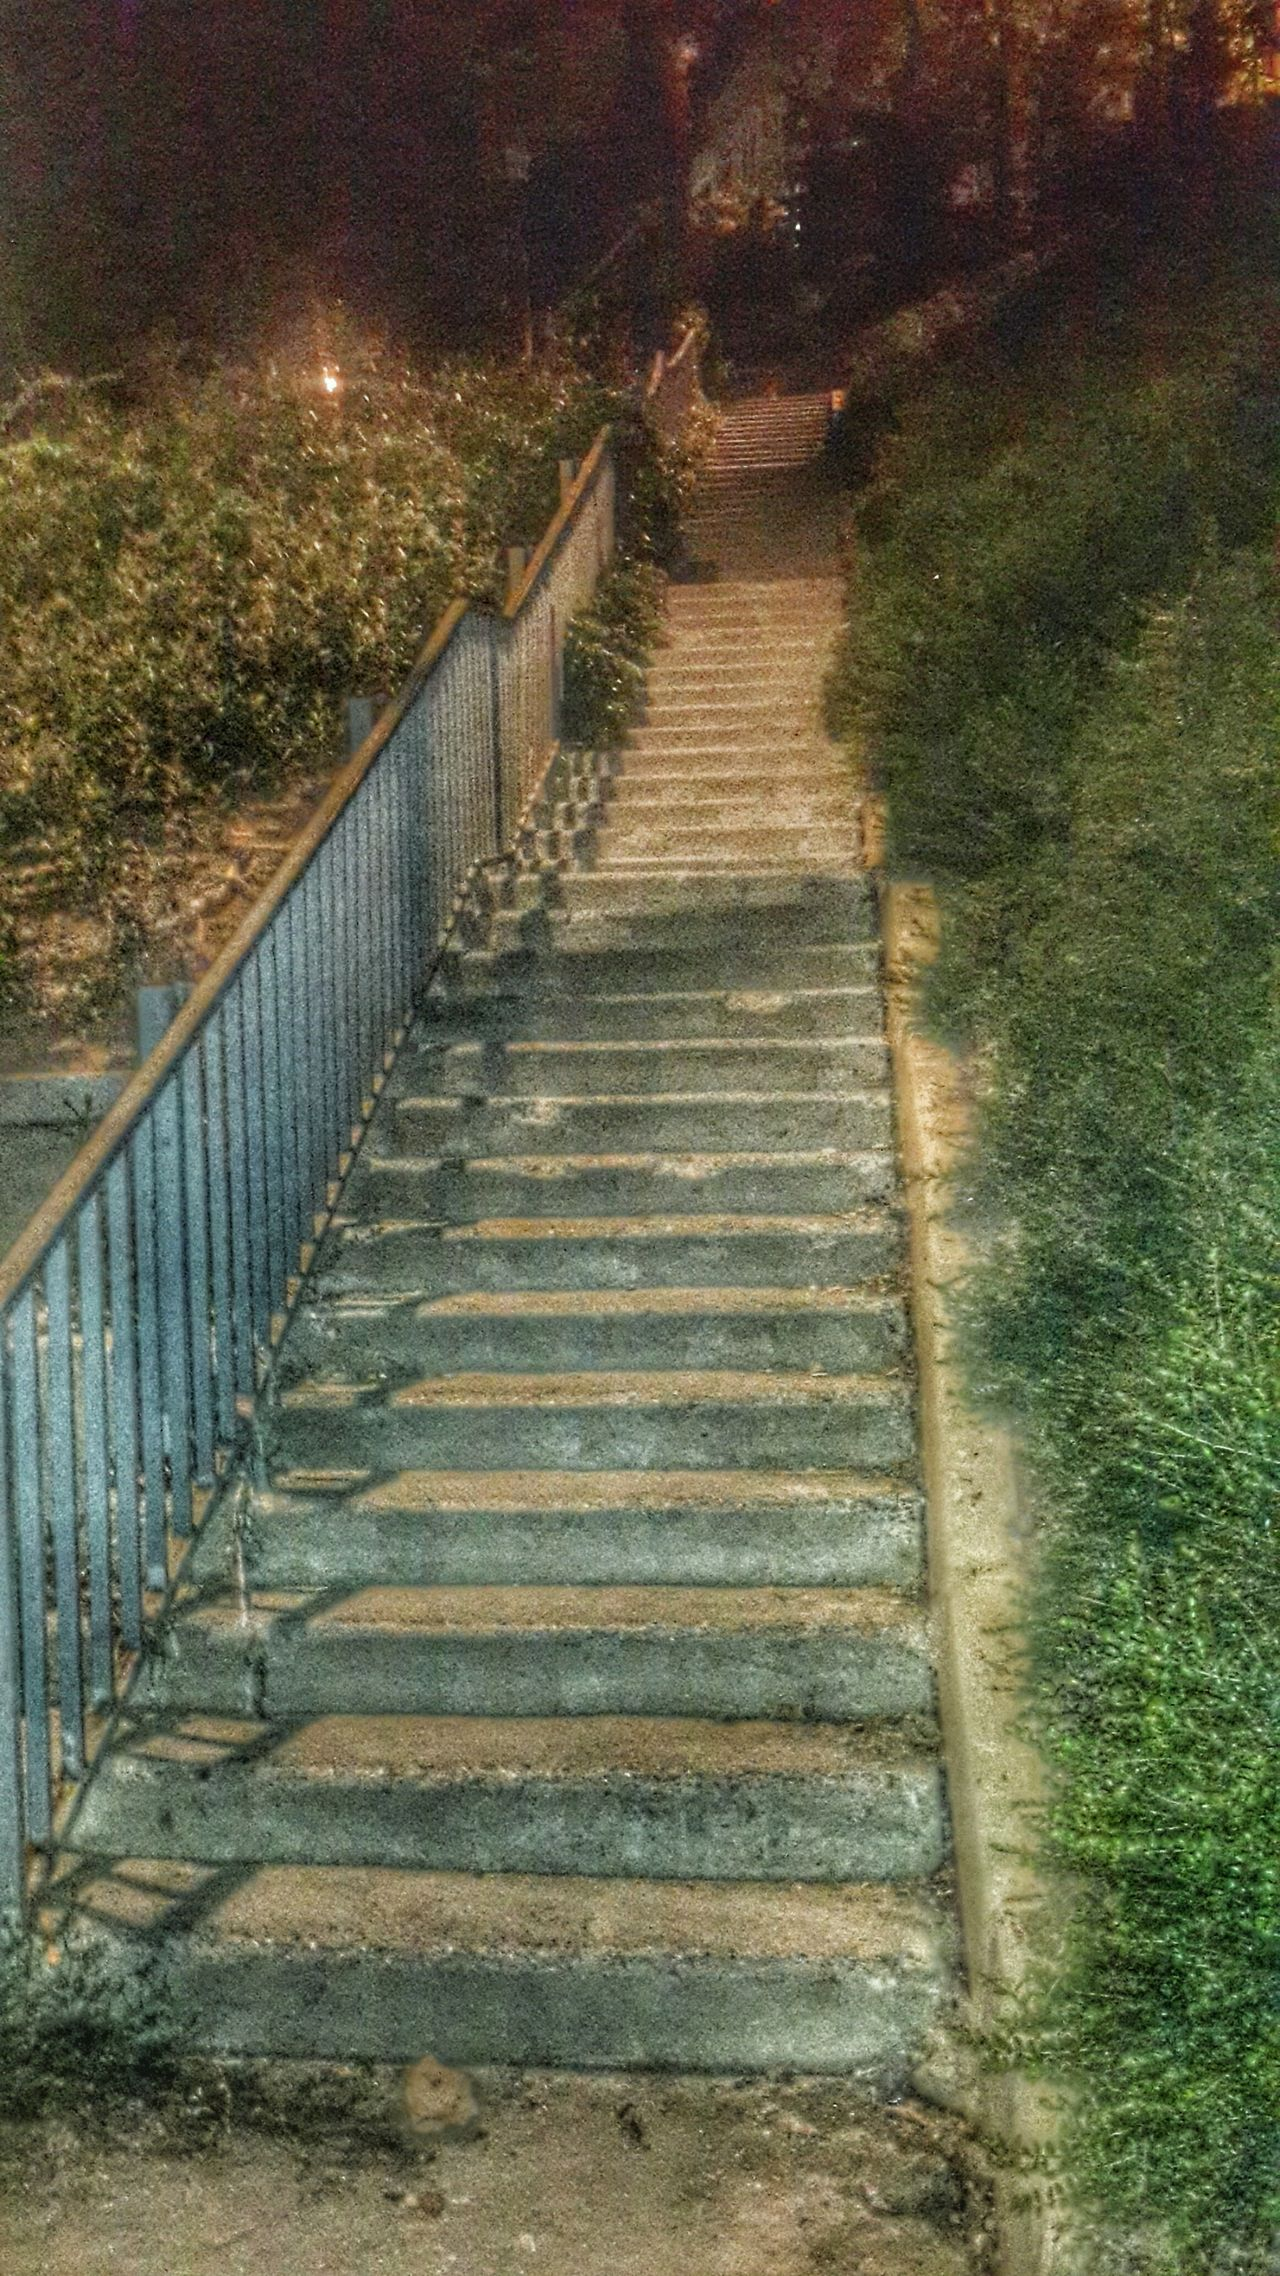 👣👣 Stairs Come Out  Tiring Nightphotography Benimkadrajim Night Eyemmarket Anıyakala Eye4photography  Nature Photography EyeEm Gallery Eyem Best Shots Nature_collection EyeEm Nature Lover EyeEm Best Shots EyeEmBestPics Eyemphotography Eyem Eyemphotos